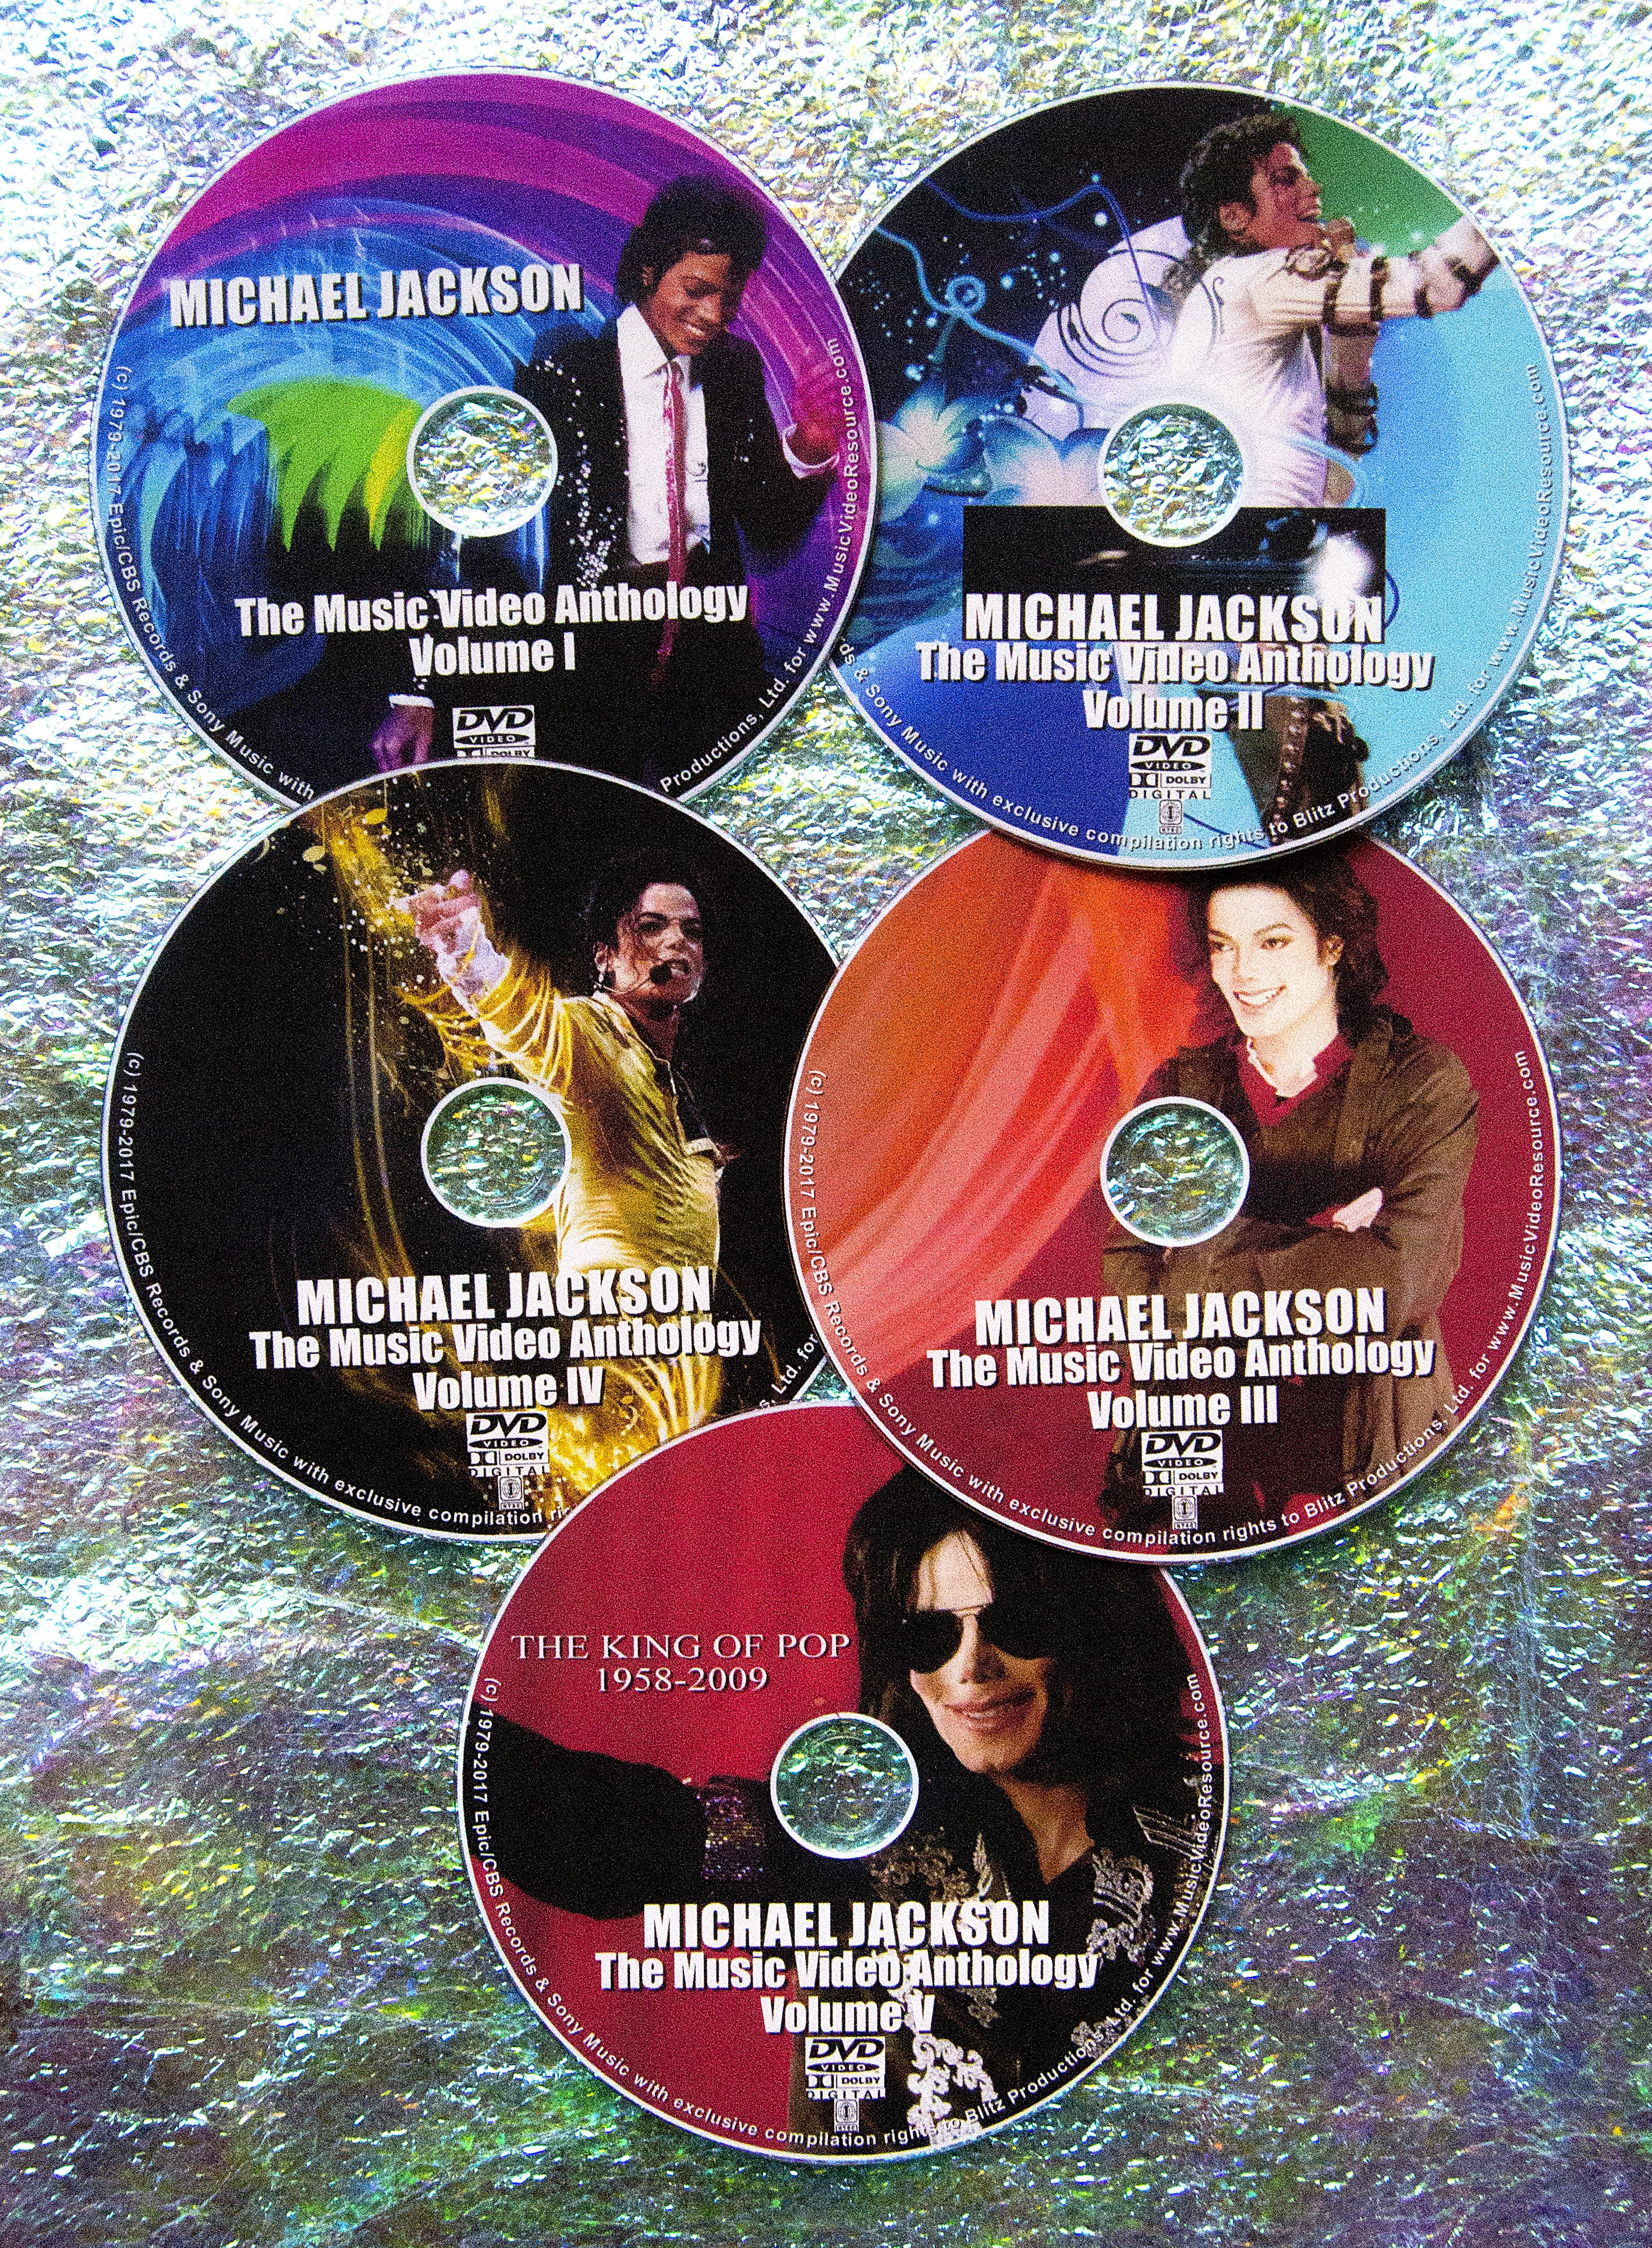 Michael Jackson THE Music Video Collection 1979-2016 (5 DVD Set OVER 8  Hours) INCLUDES THE LATEST FROM 2014's XSCAPE LP & MORE!!